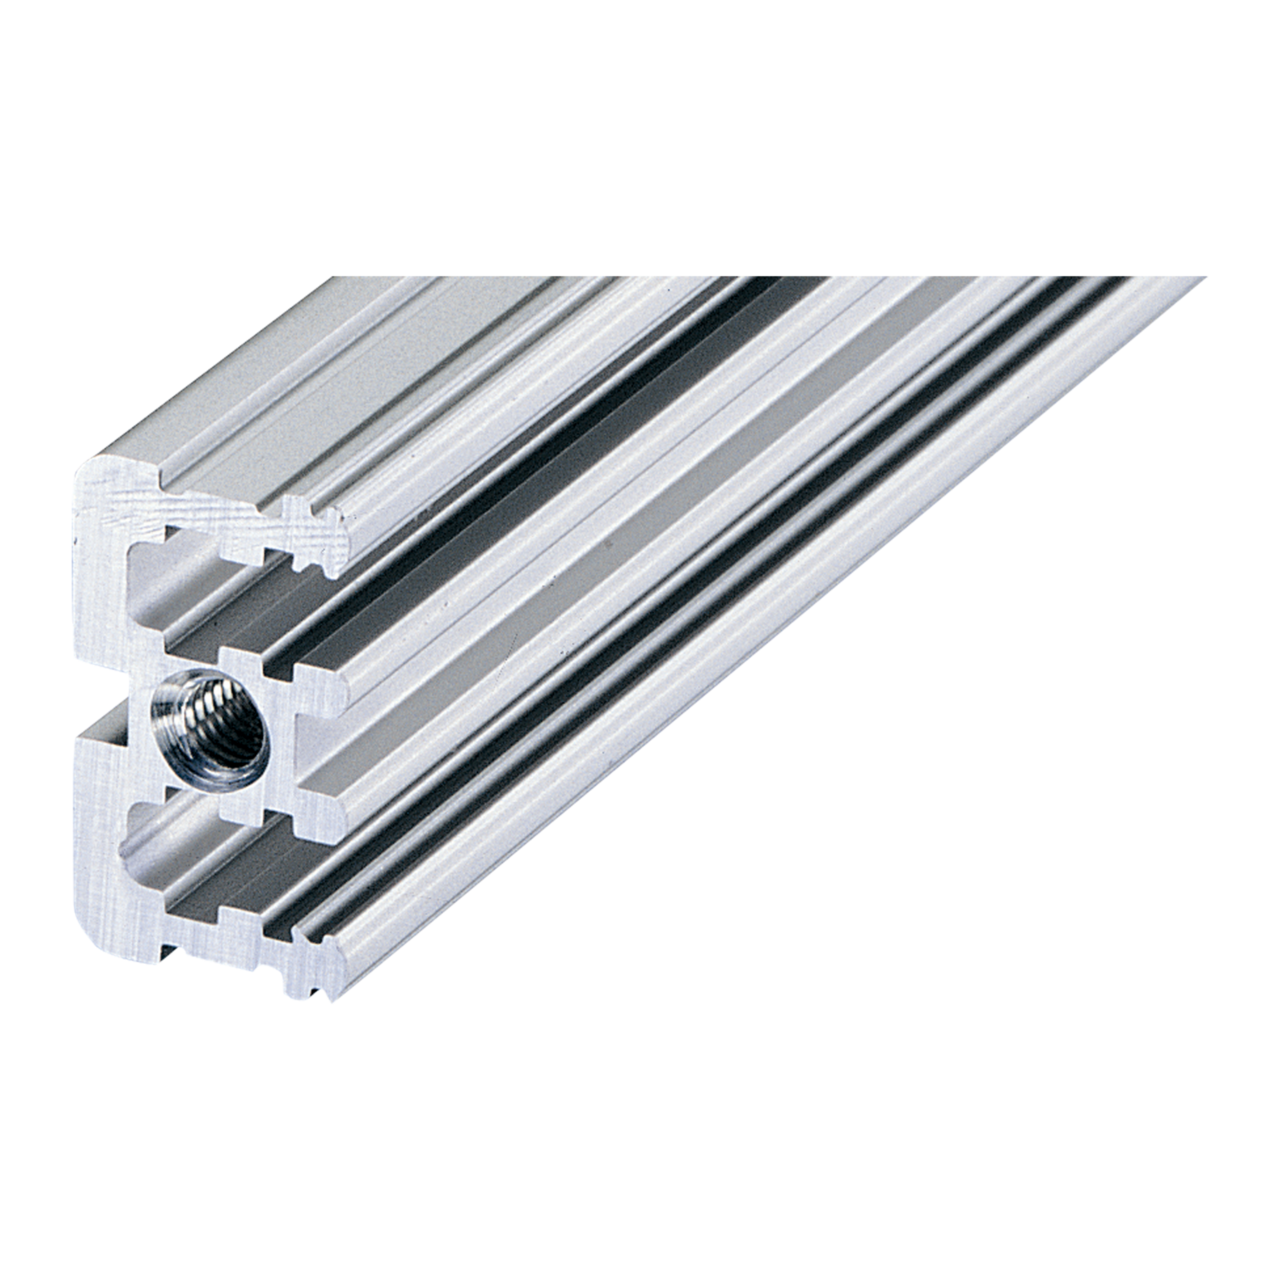 Image for Horizontal rail, rear, center, type VT from Schroff - North America